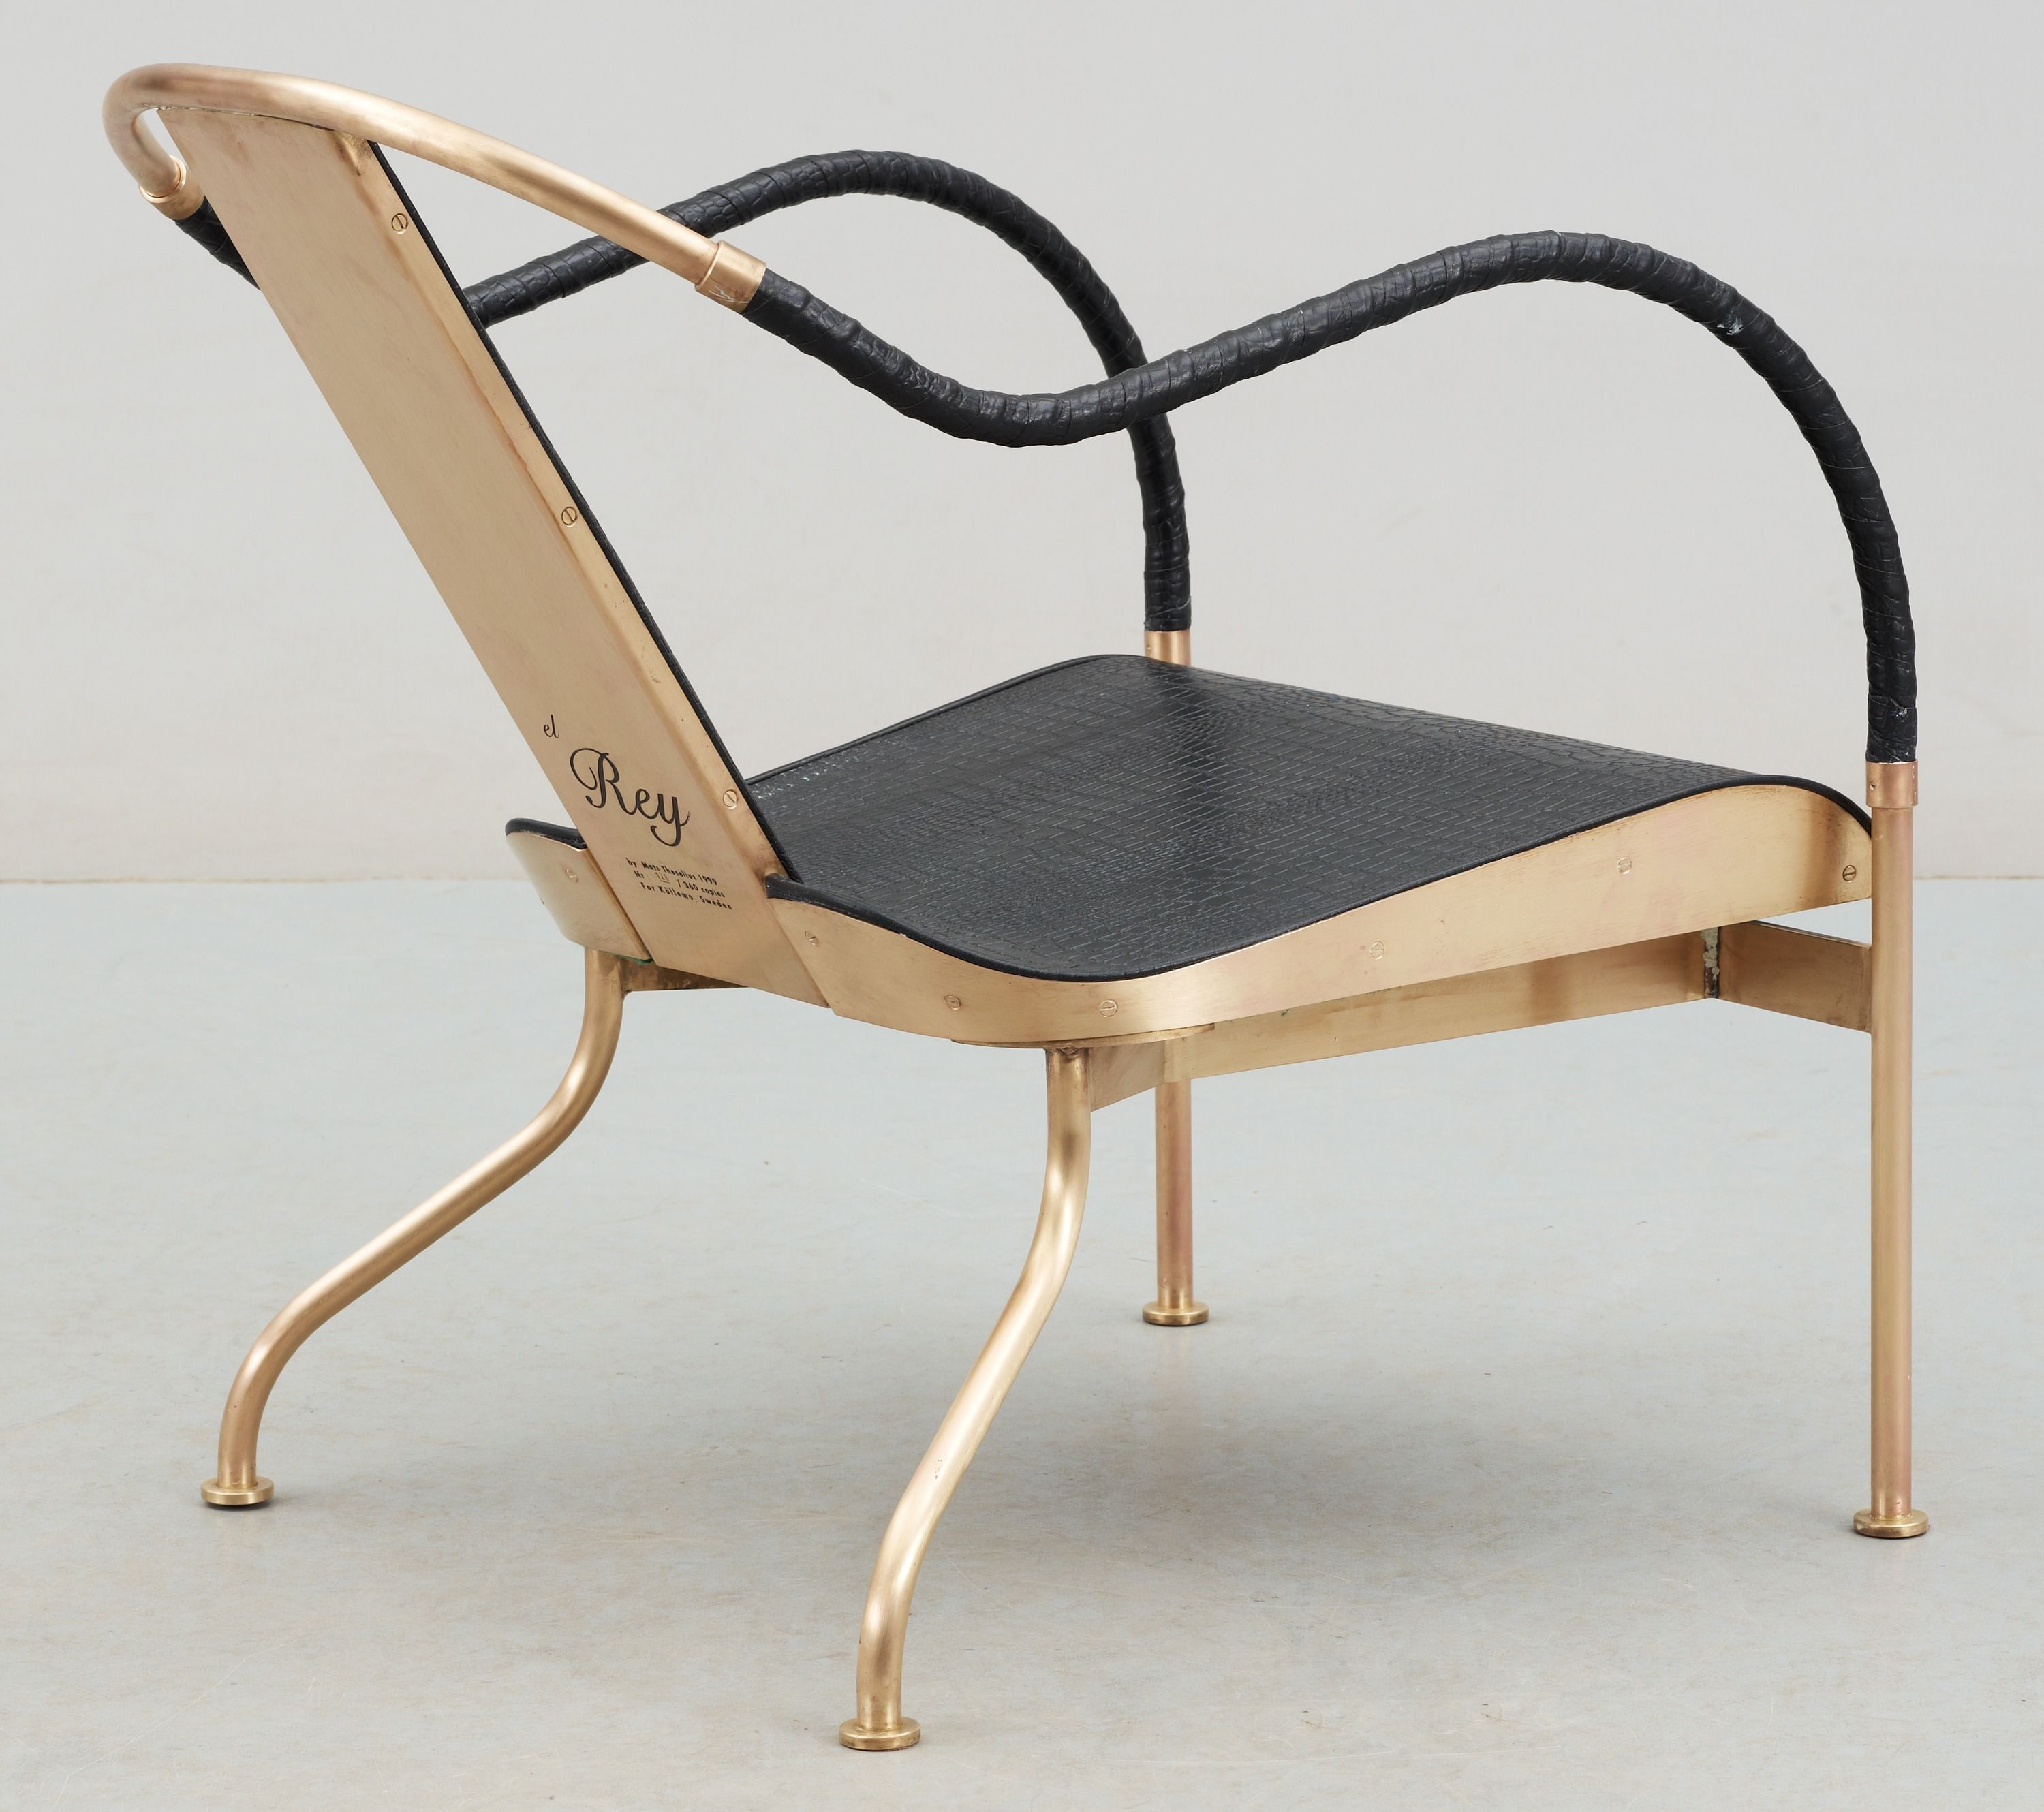 Mats Theselius U0027El Reyu0027 Easy Chair (1999), Brass And Leather U2013